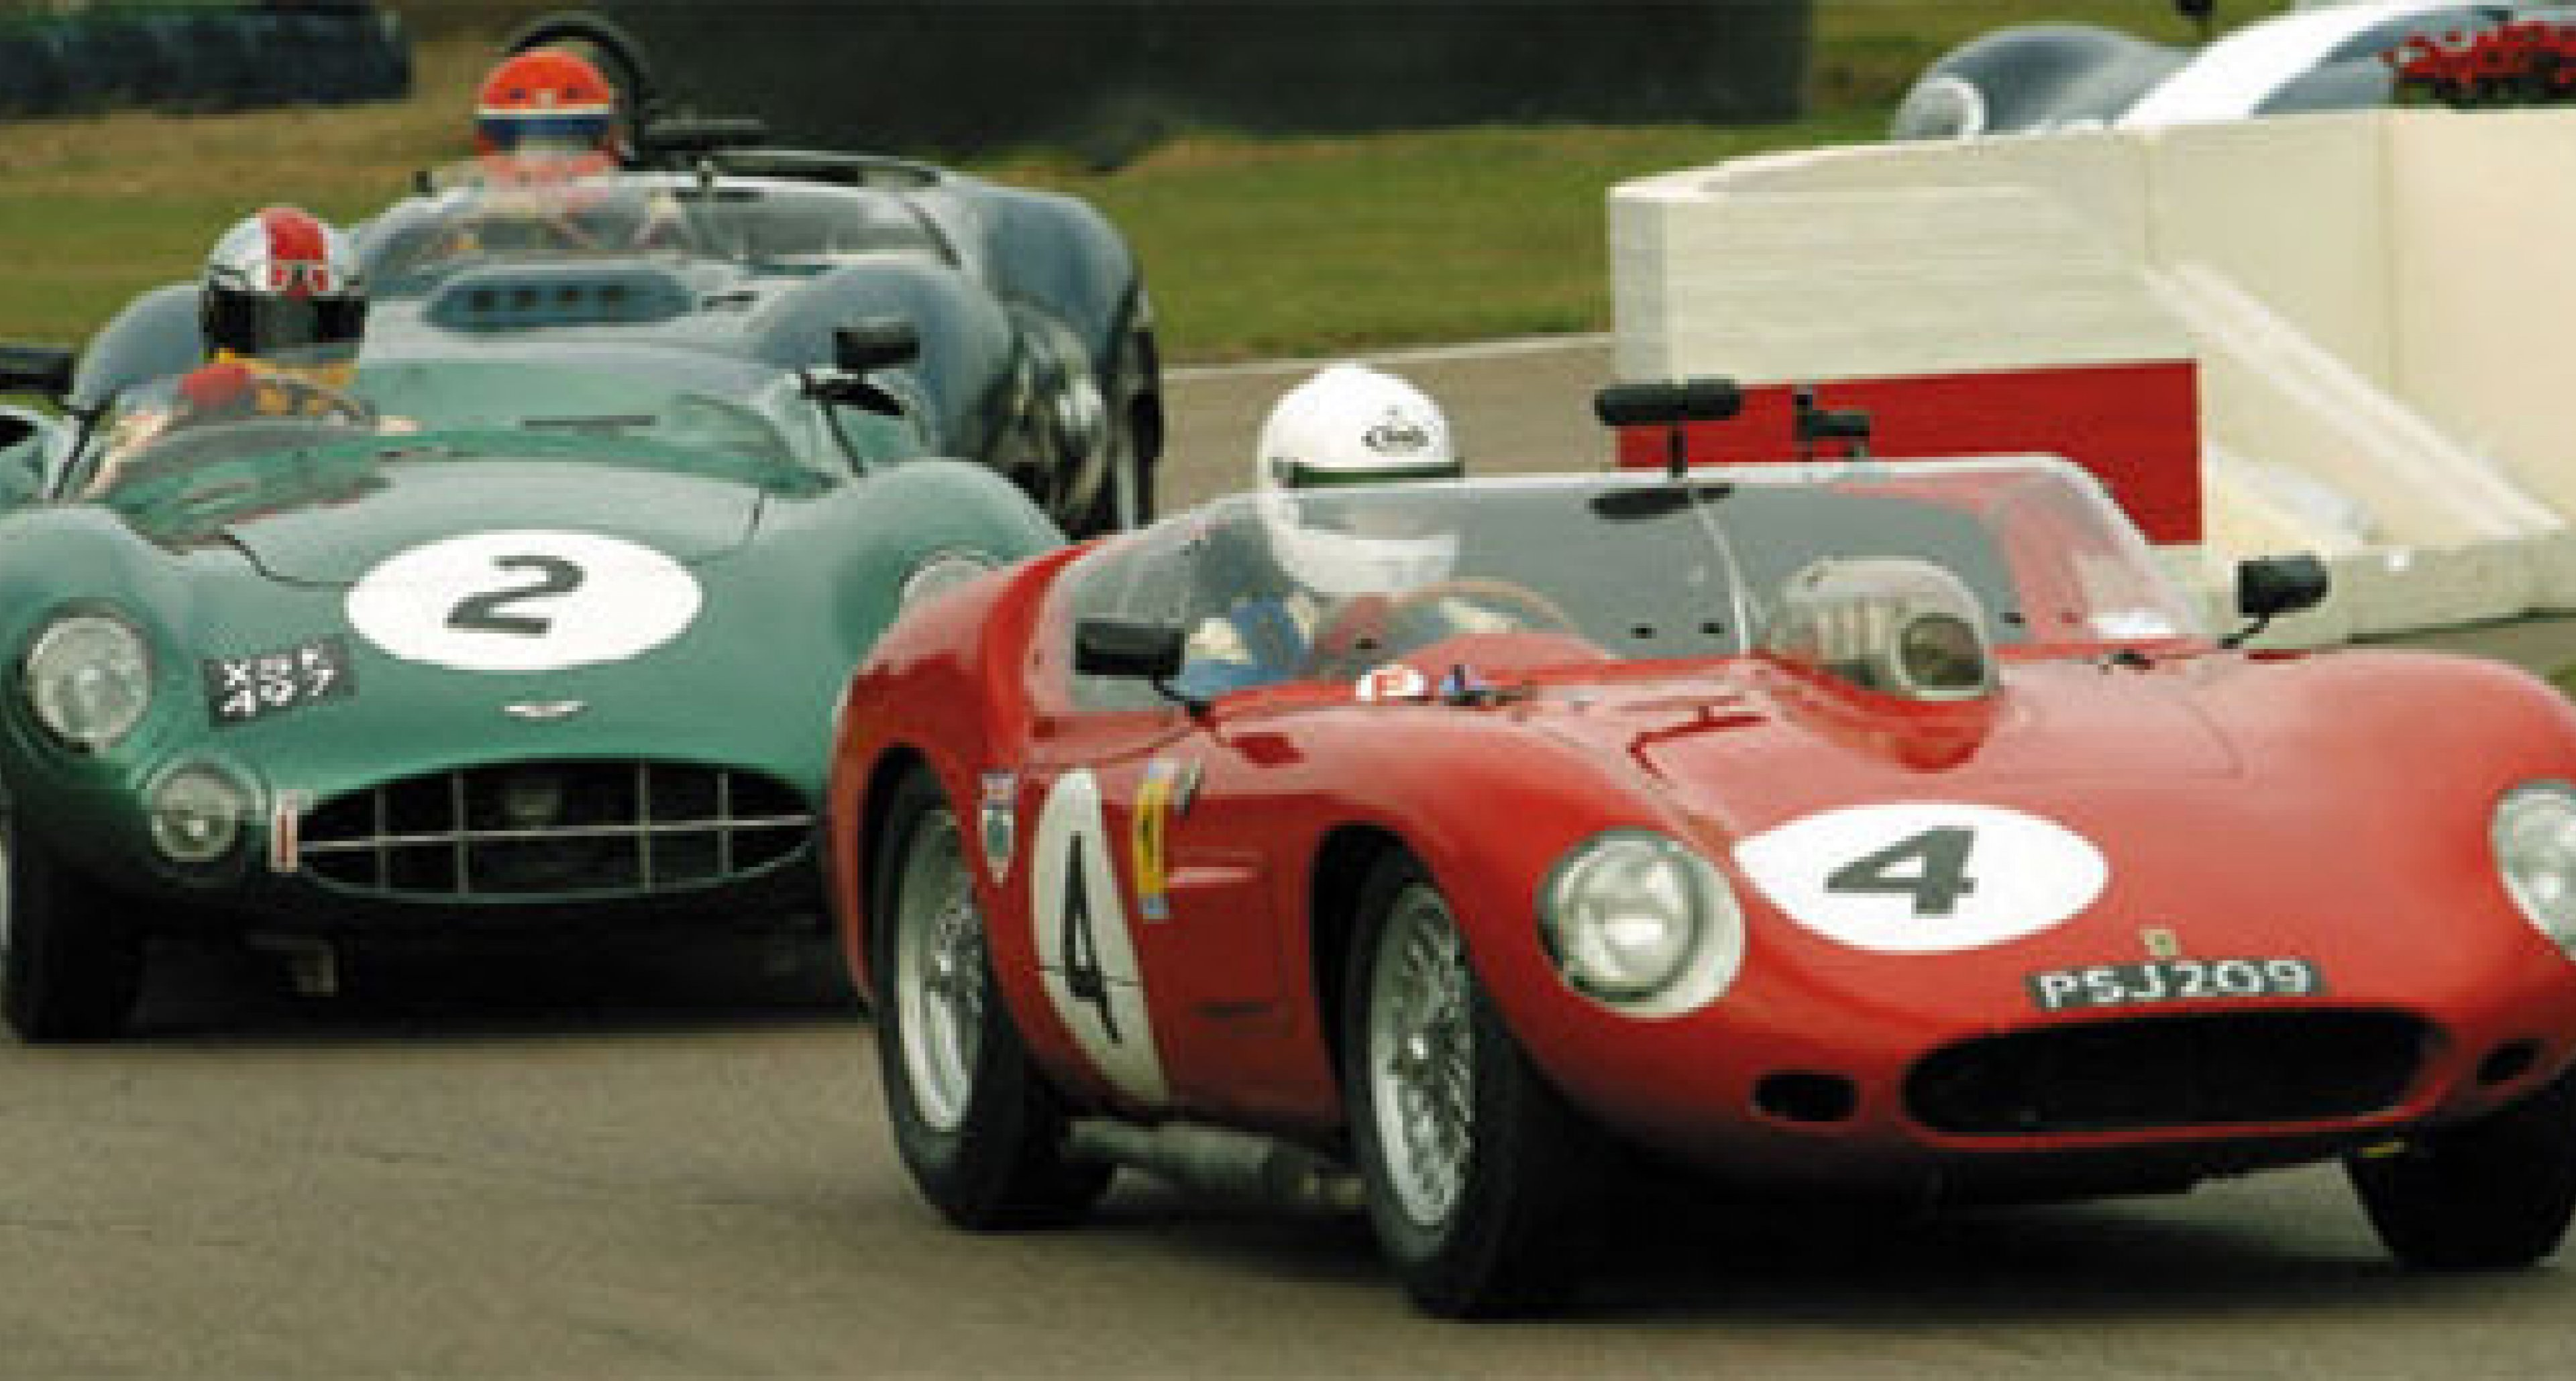 Ferrari Hat-Trick - Tony Dron describes his win in the Ferrari 246S Dino at Goodwood 2003